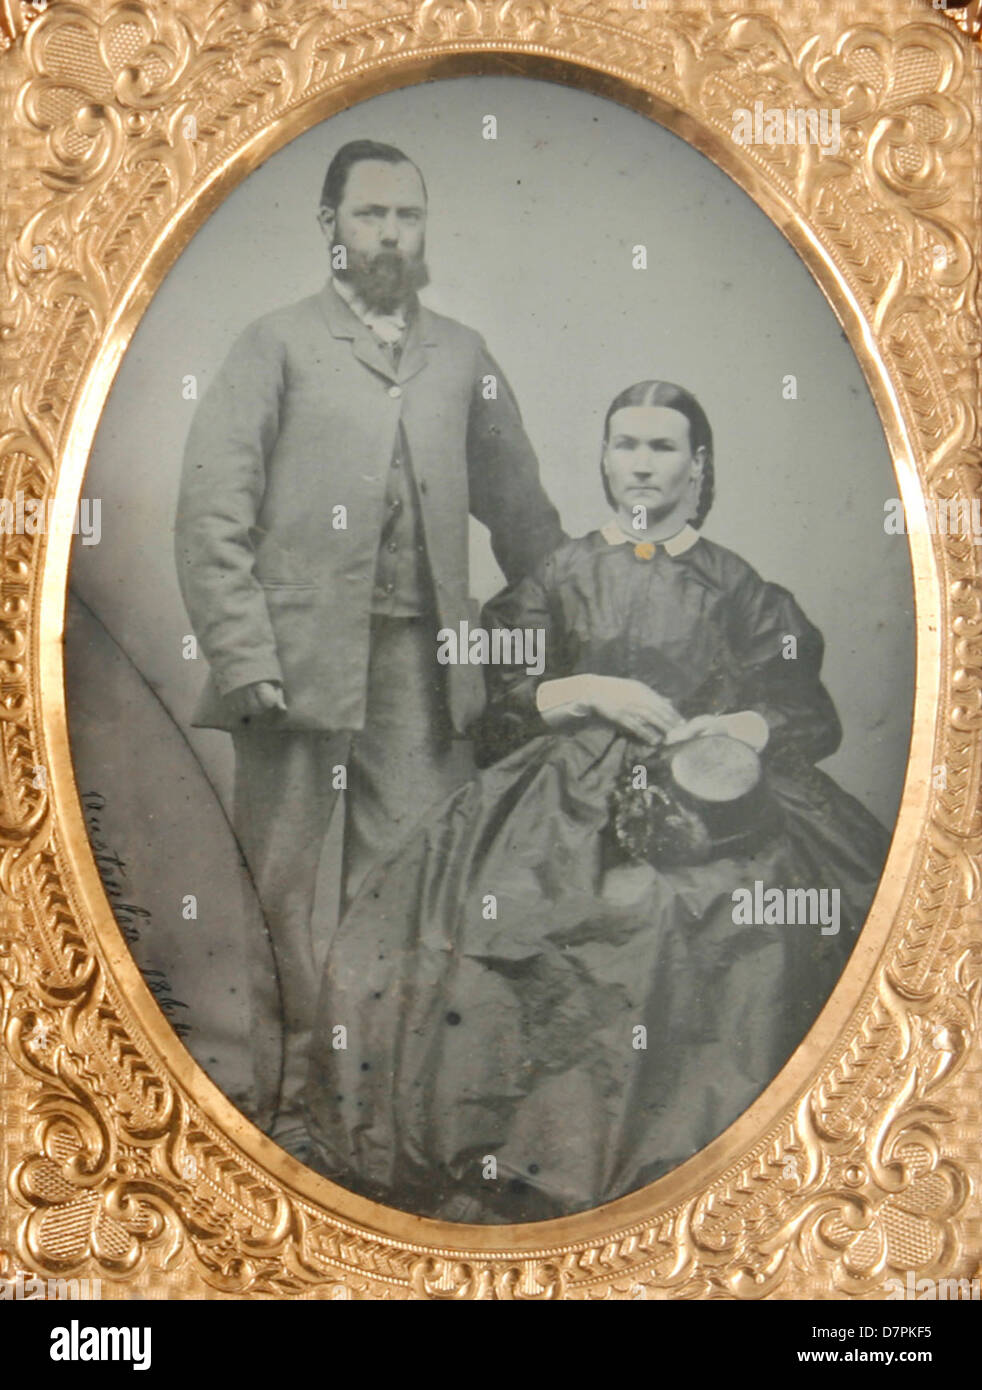 Unidentified man and woman - Stock Image